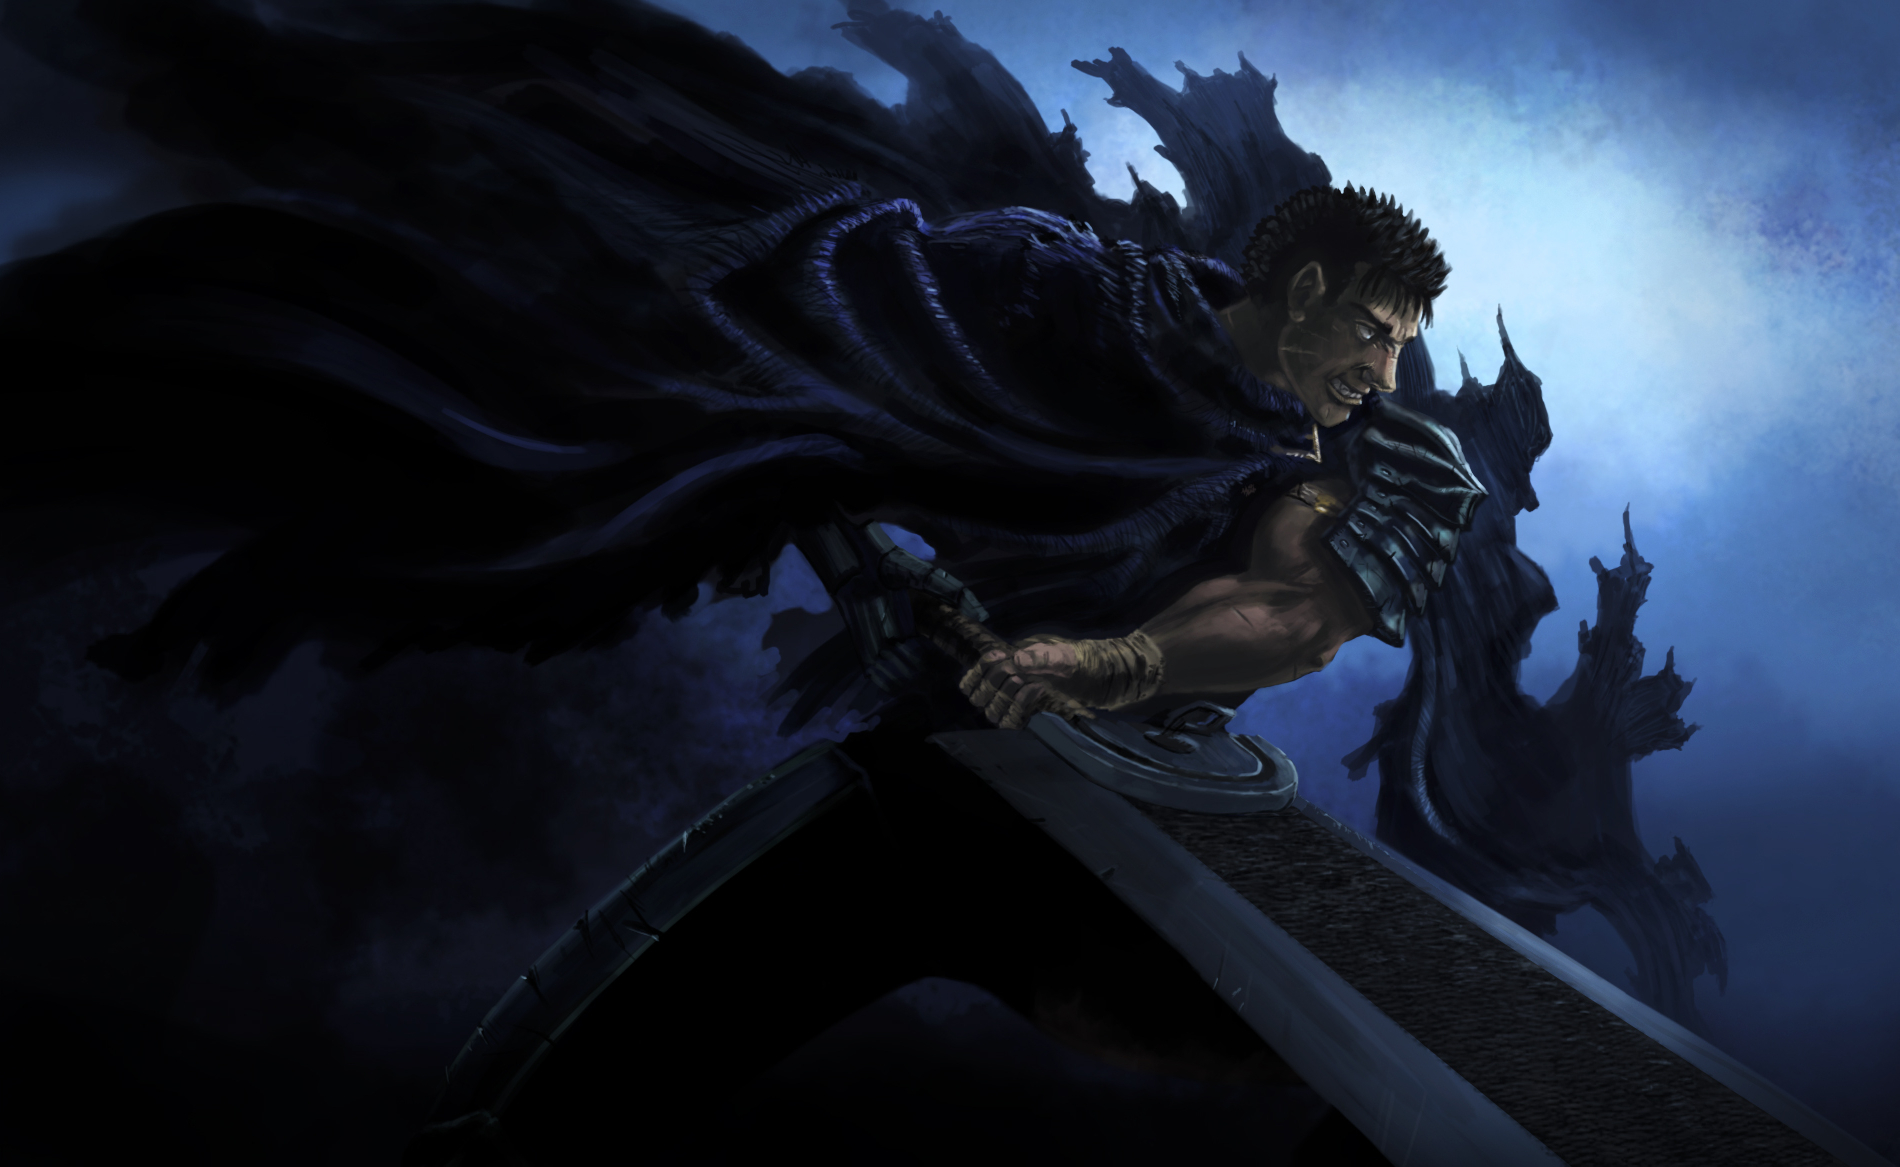 berserk Guts Anime HD Wallpaper